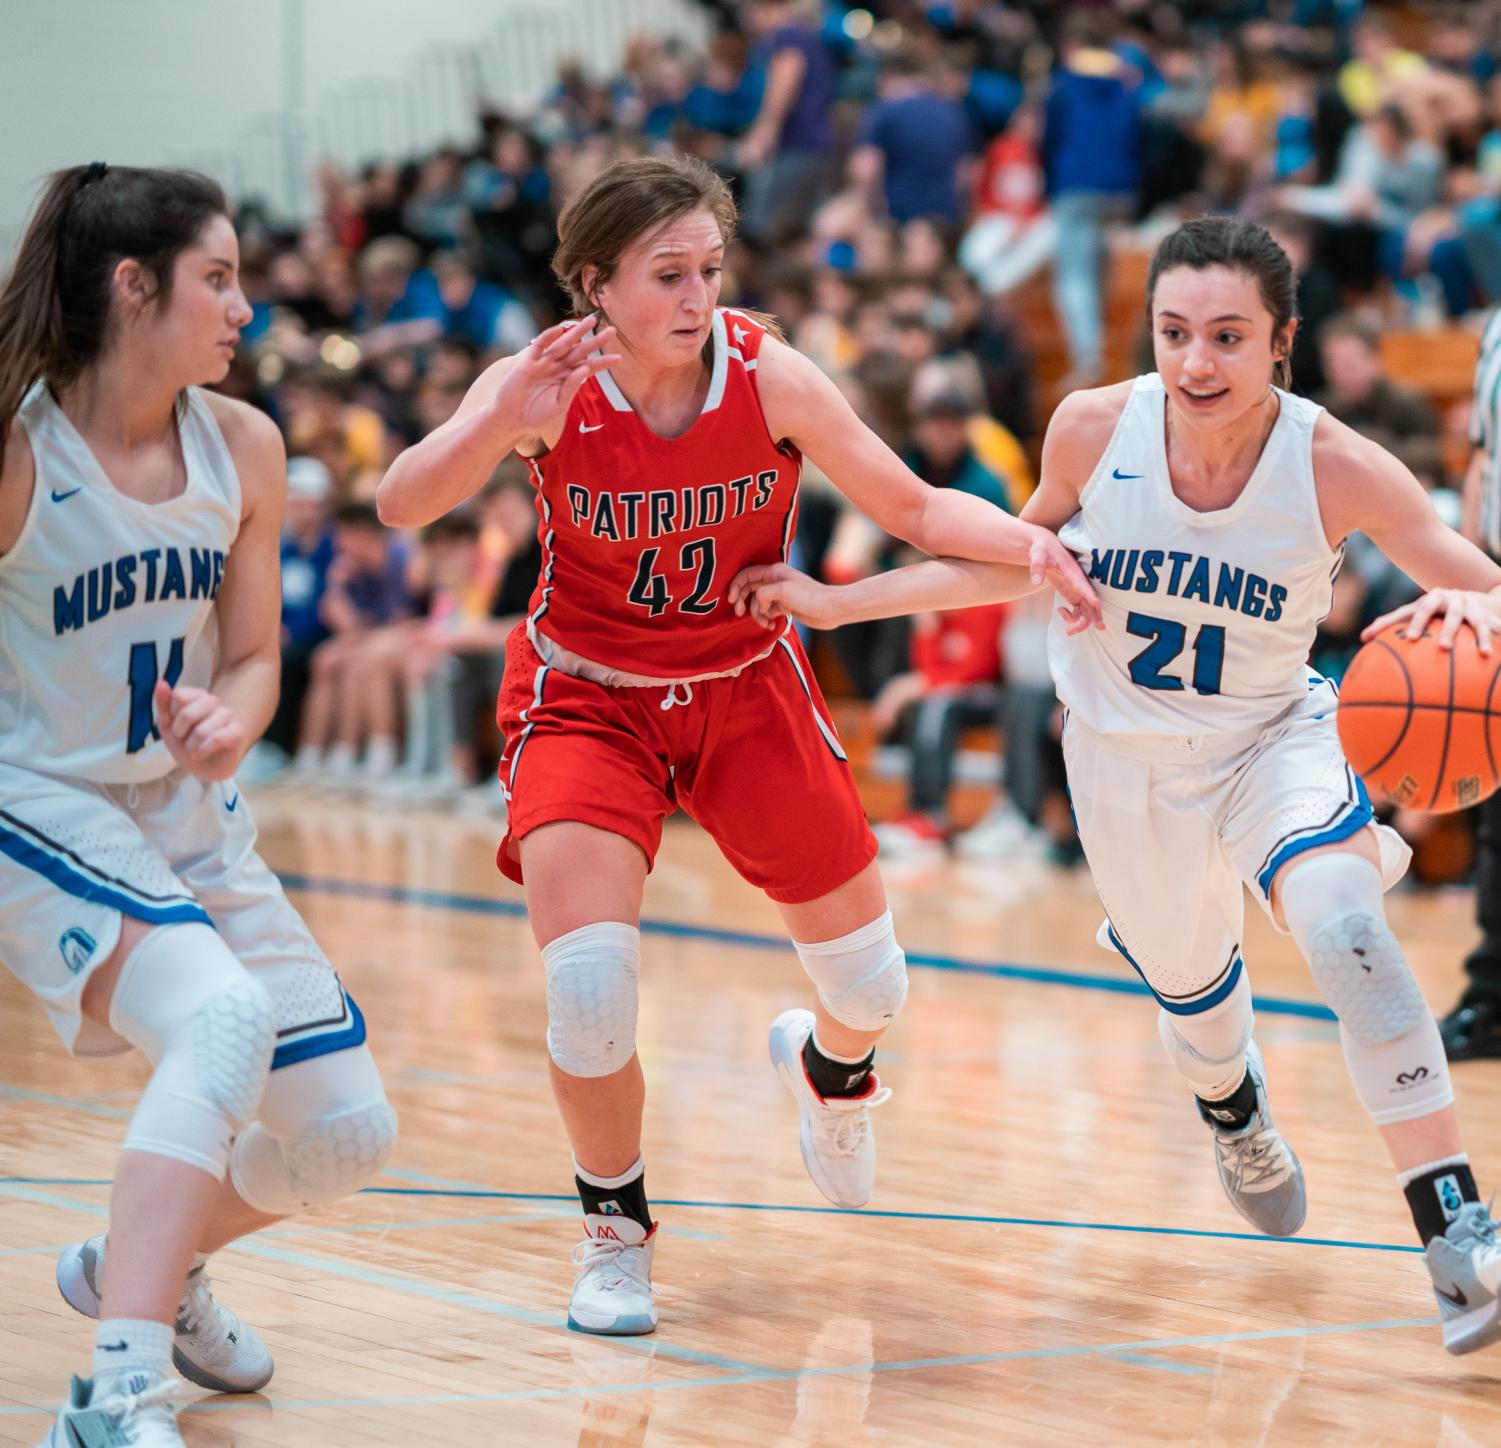 Senior Nicole Avila-Ambrosi takes the ball down the court while defending against a Millard South Patriot. the Mustangs took on their rivals, the Patriots, at the Stable on Jan. 31st.